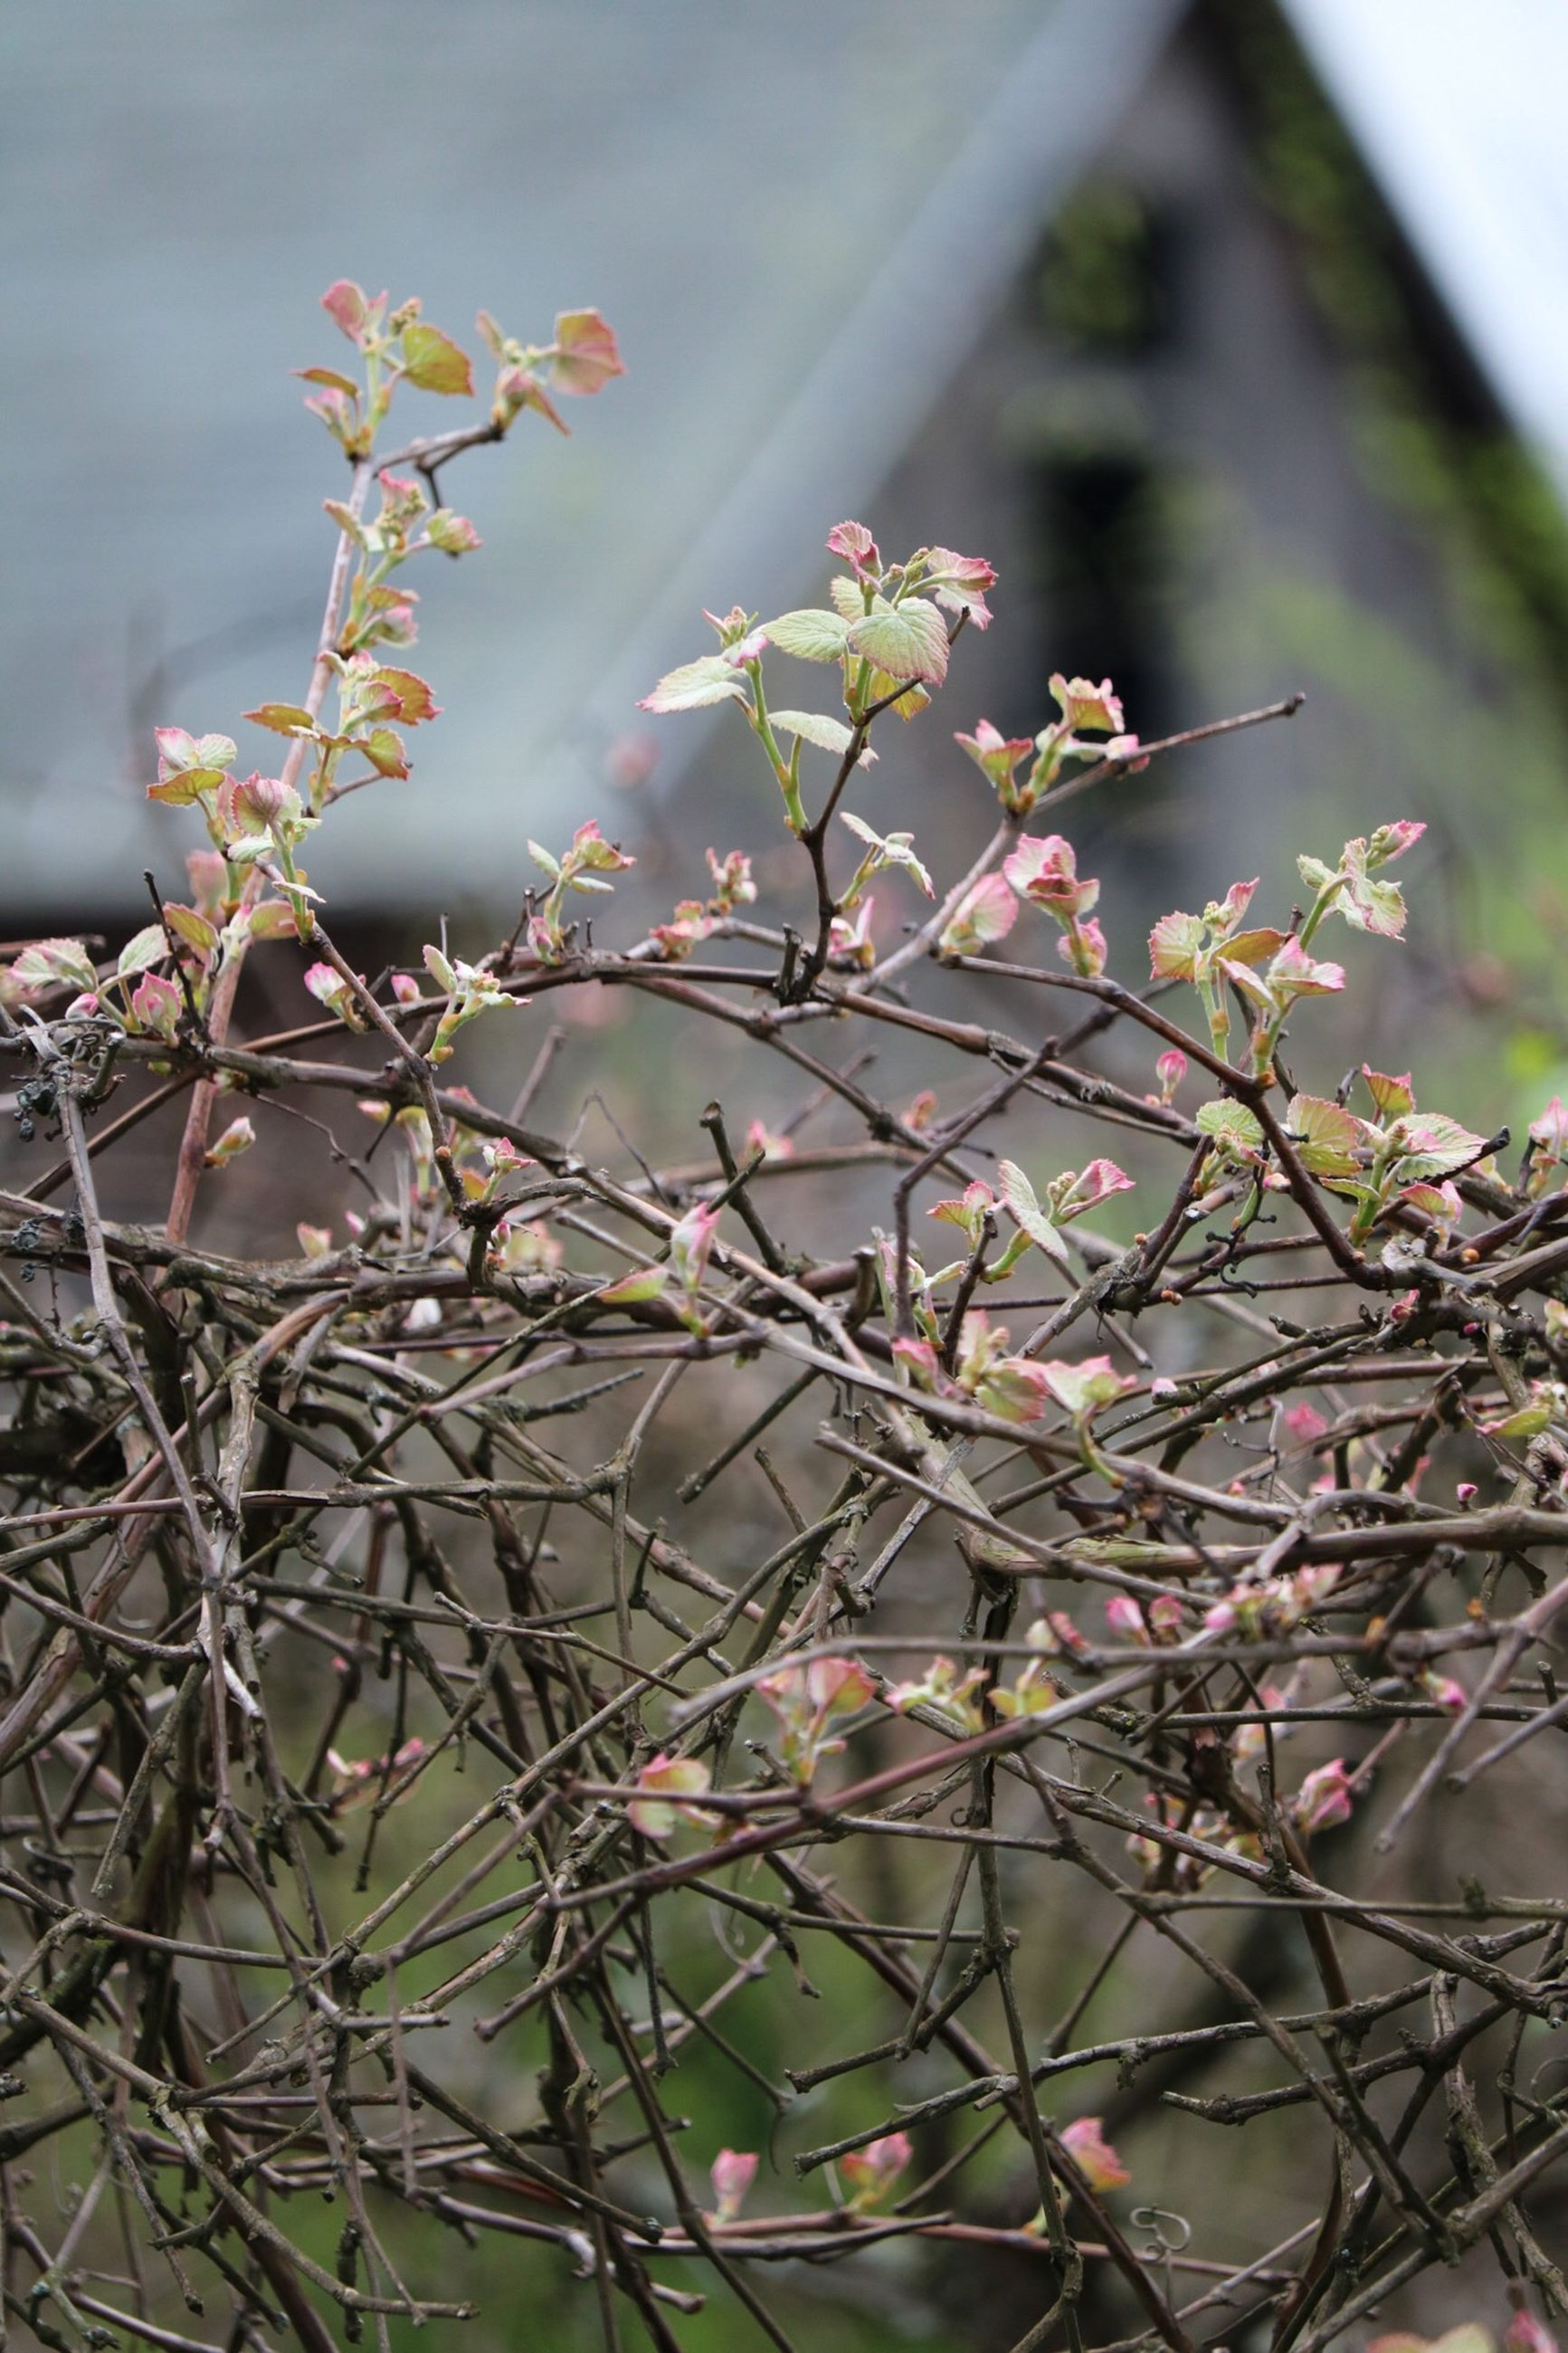 growth, branch, nature, plant, tree, no people, day, flower, beauty in nature, outdoors, fragility, focus on foreground, freshness, close-up